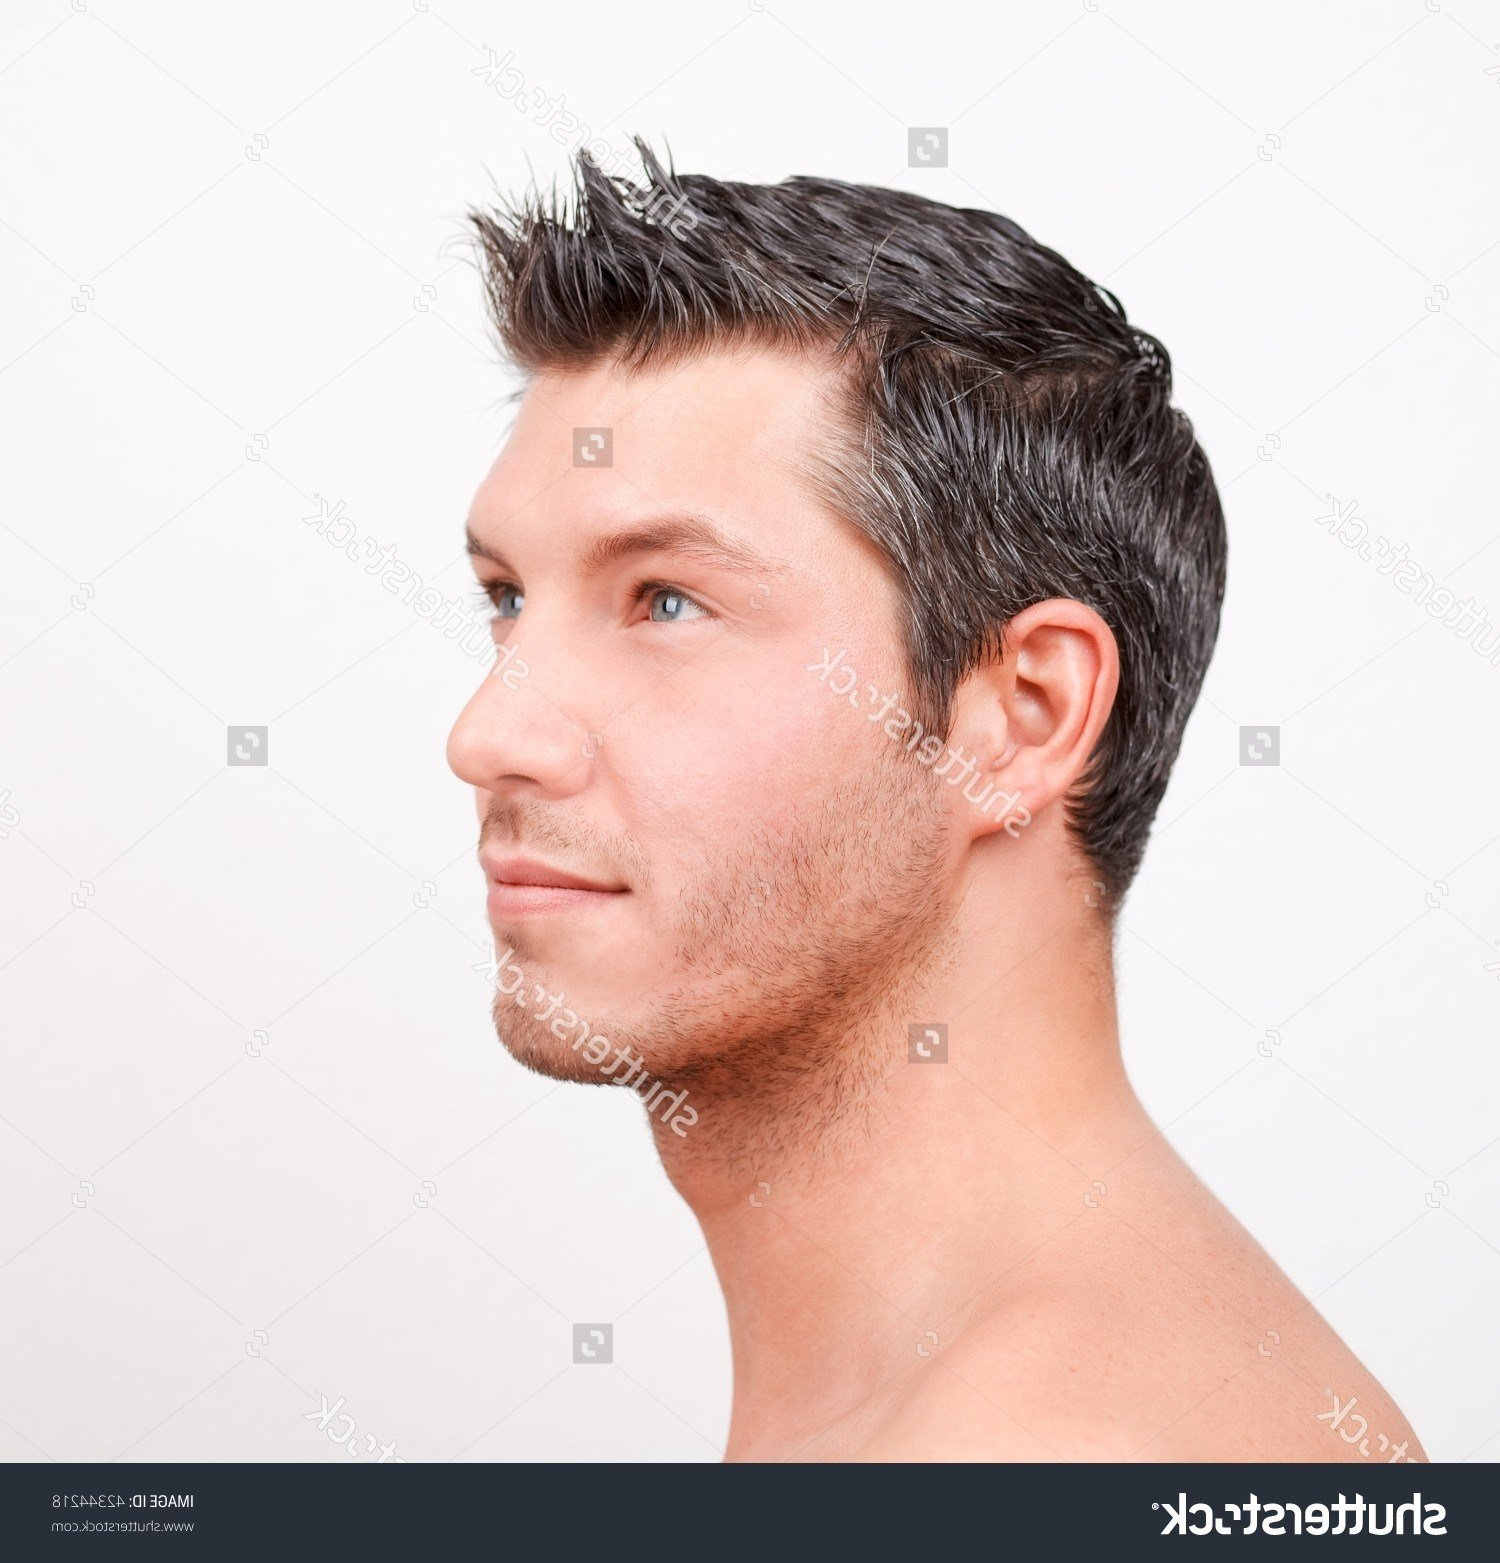 The Best Hairstyle For 30 Year Old Man – Fresh Hair Cut Pictures